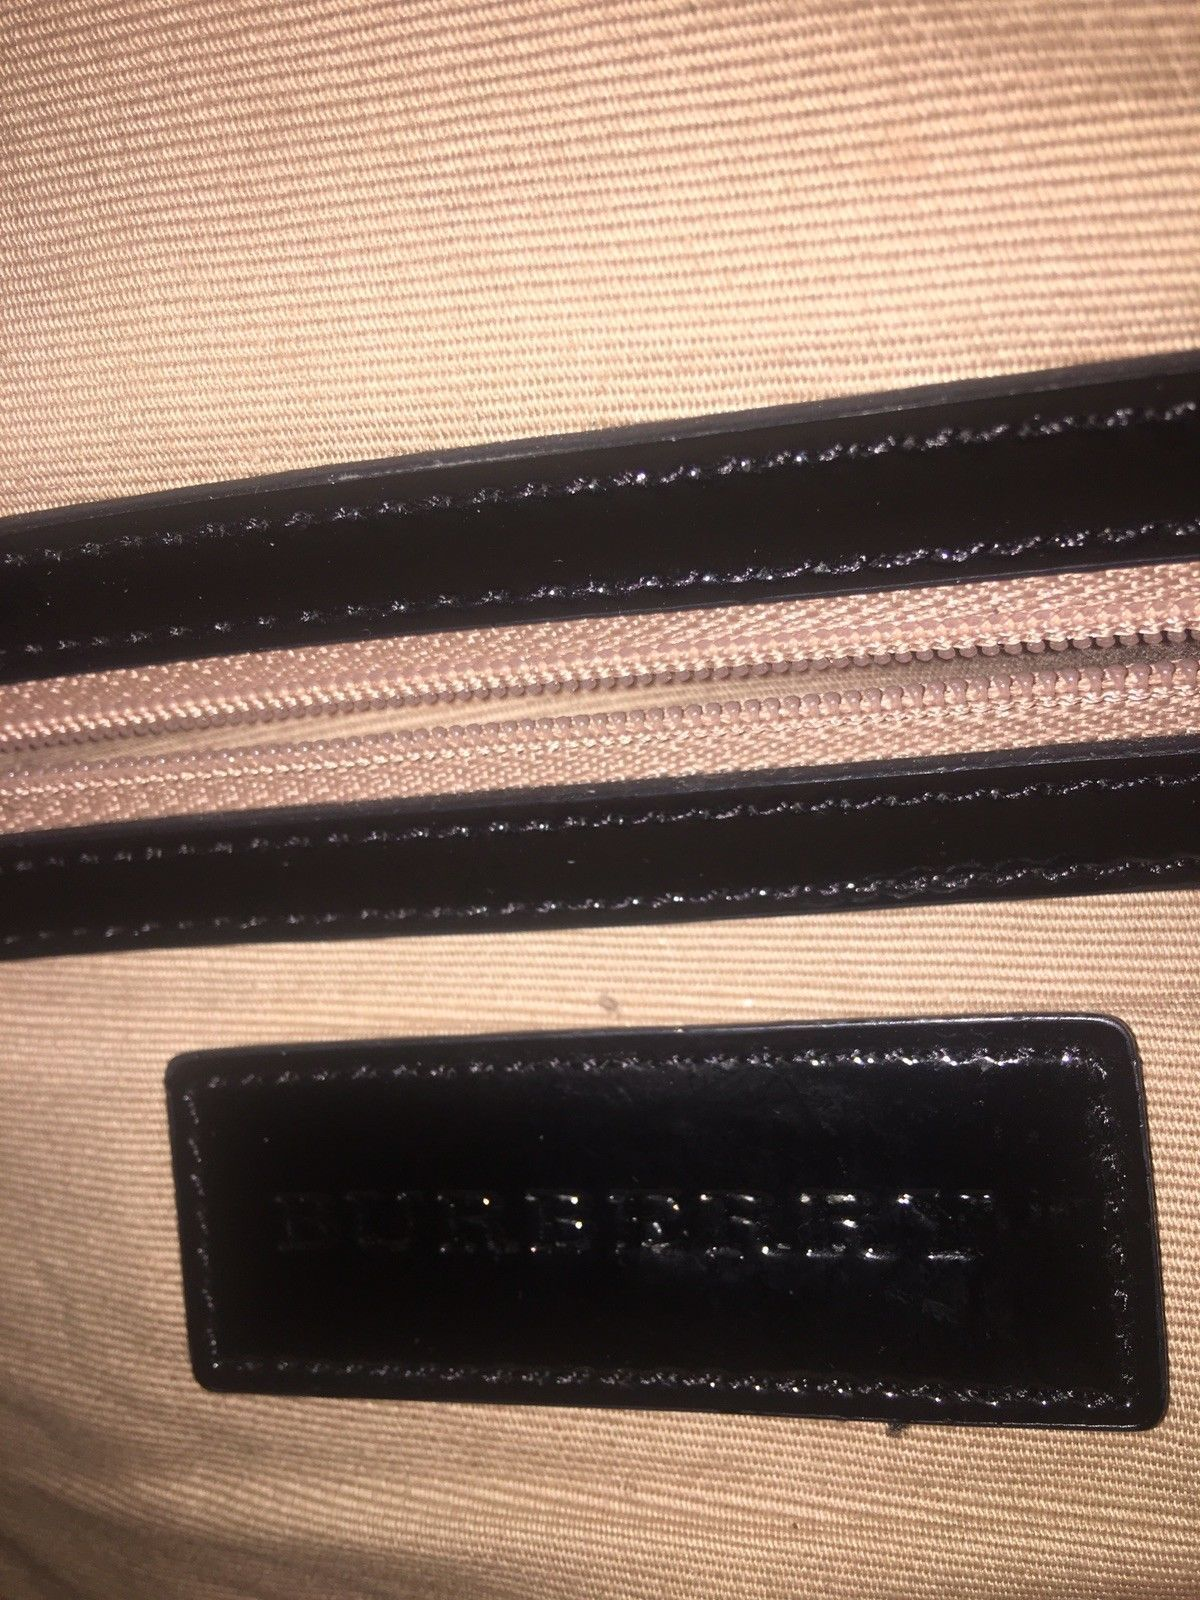 22a62c6b7a6 authentic burberry Backpack  320.0